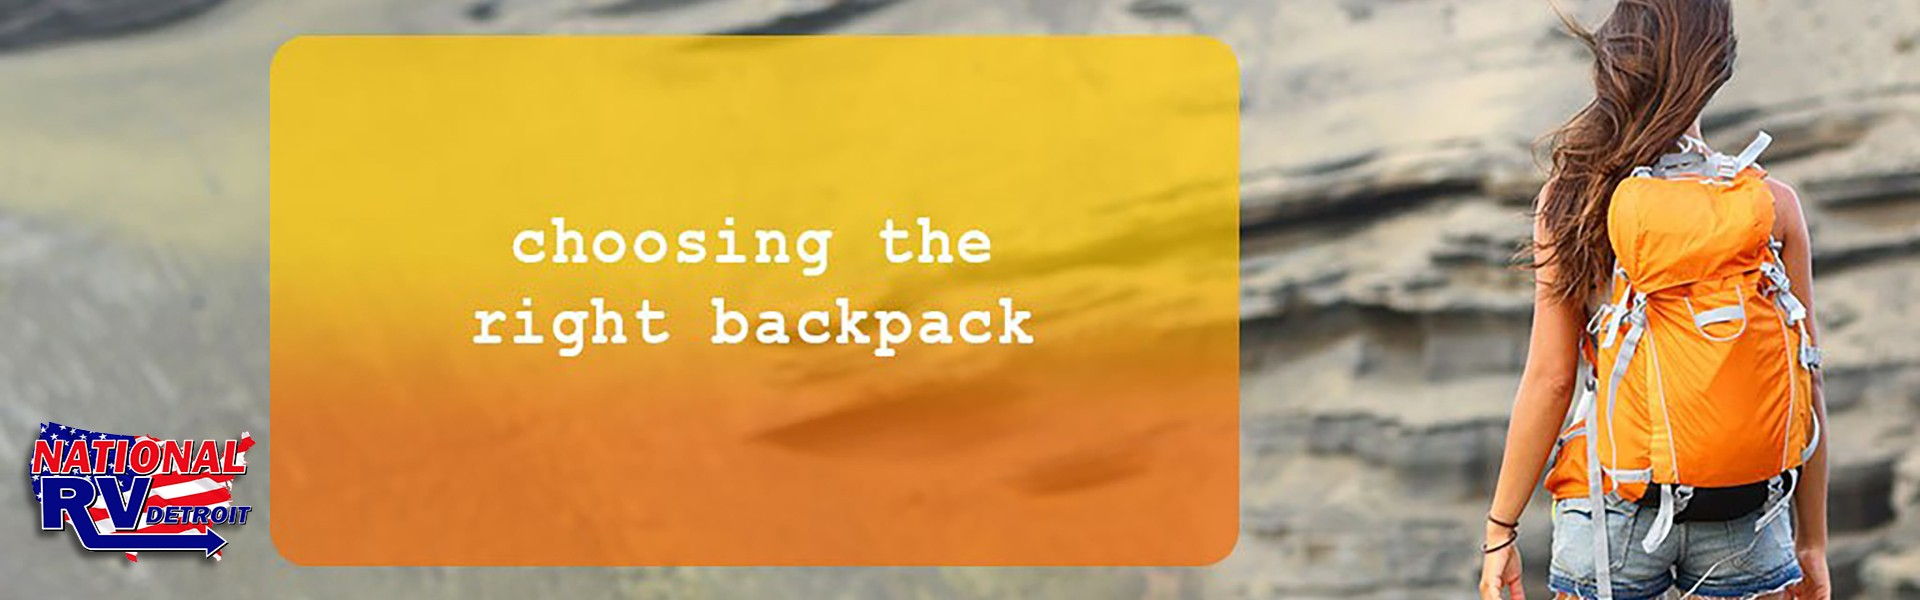 NATRV-Choosing-the-Right-Backpack-Banner